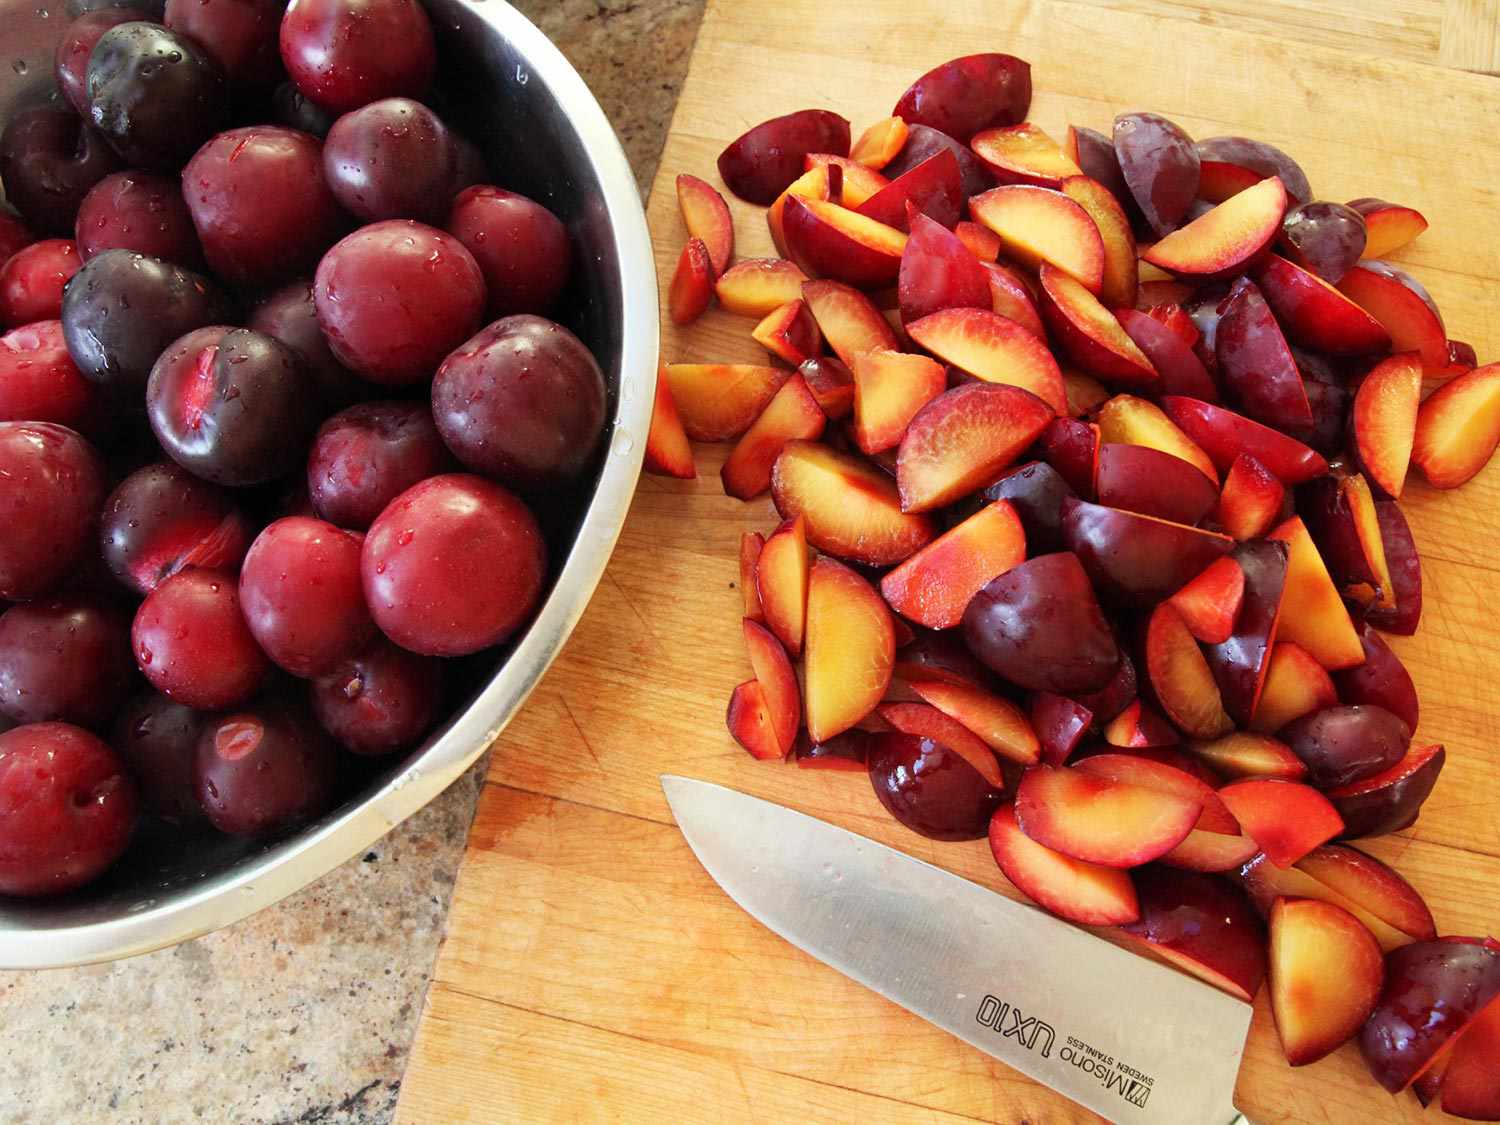 Sliced plum fruit on a wooden board next to a chef's knife, with a large metal bowl of whole plums nearby